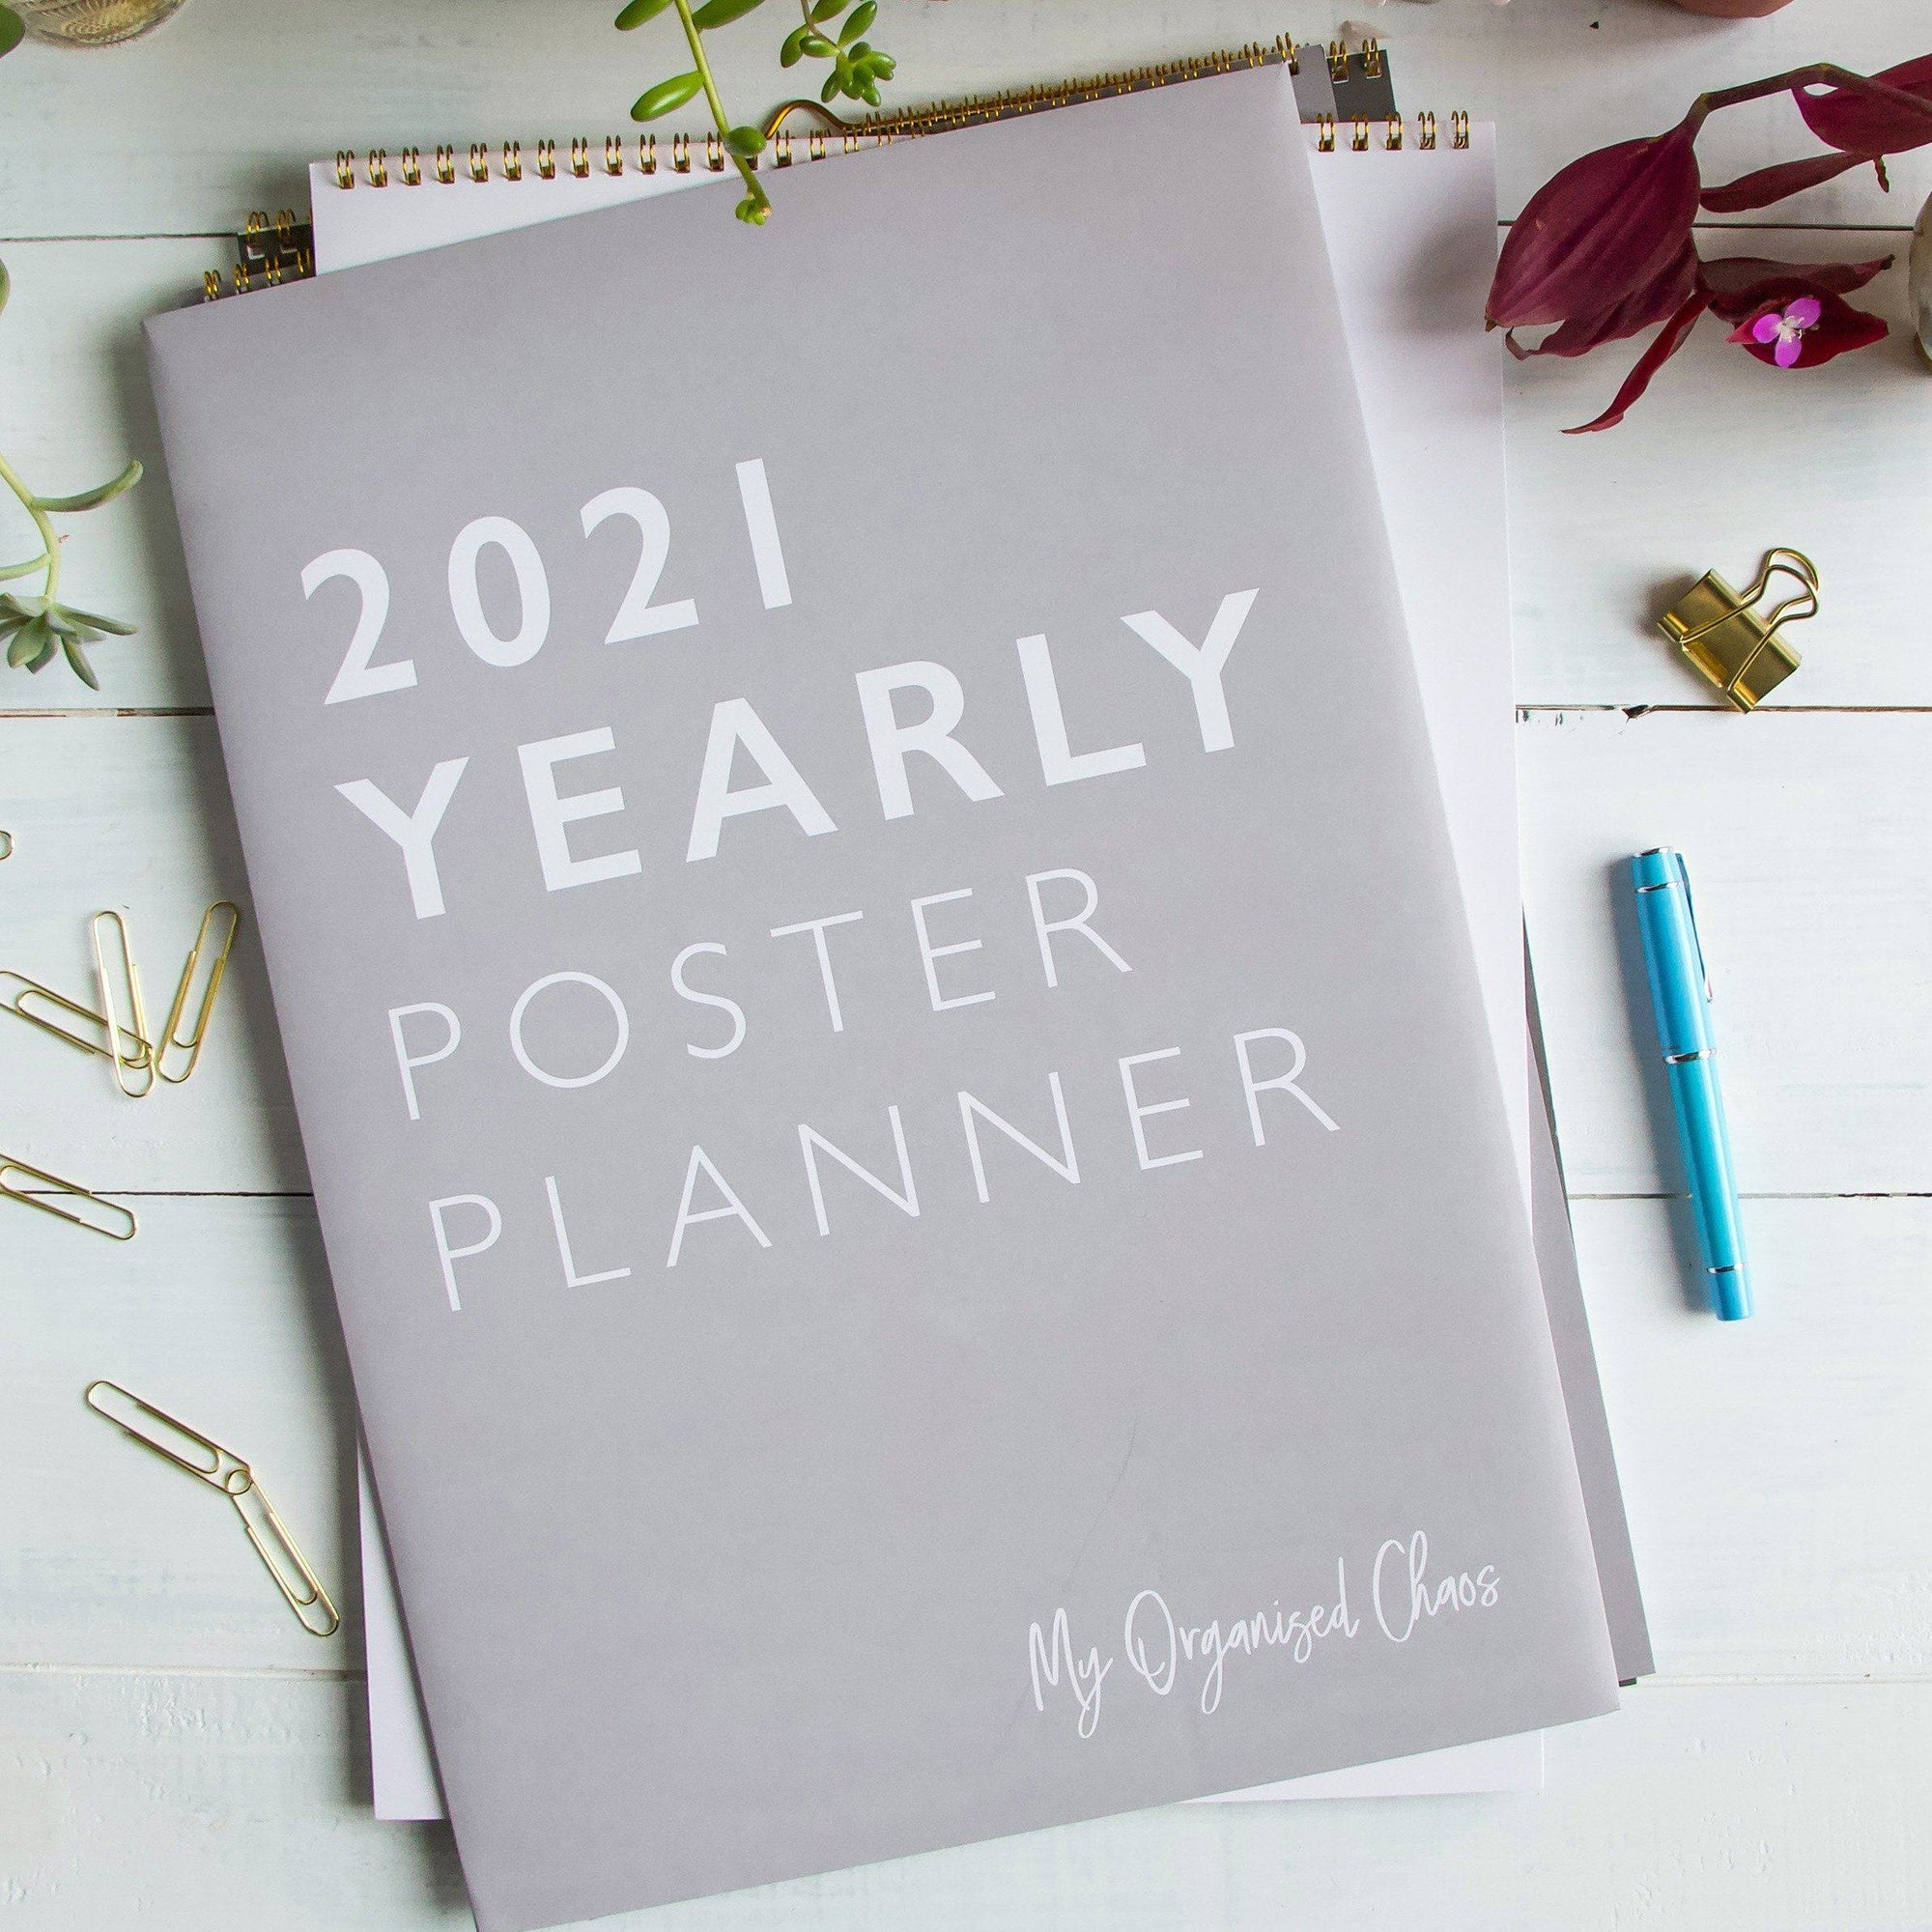 2021 Yearly Wall Planner